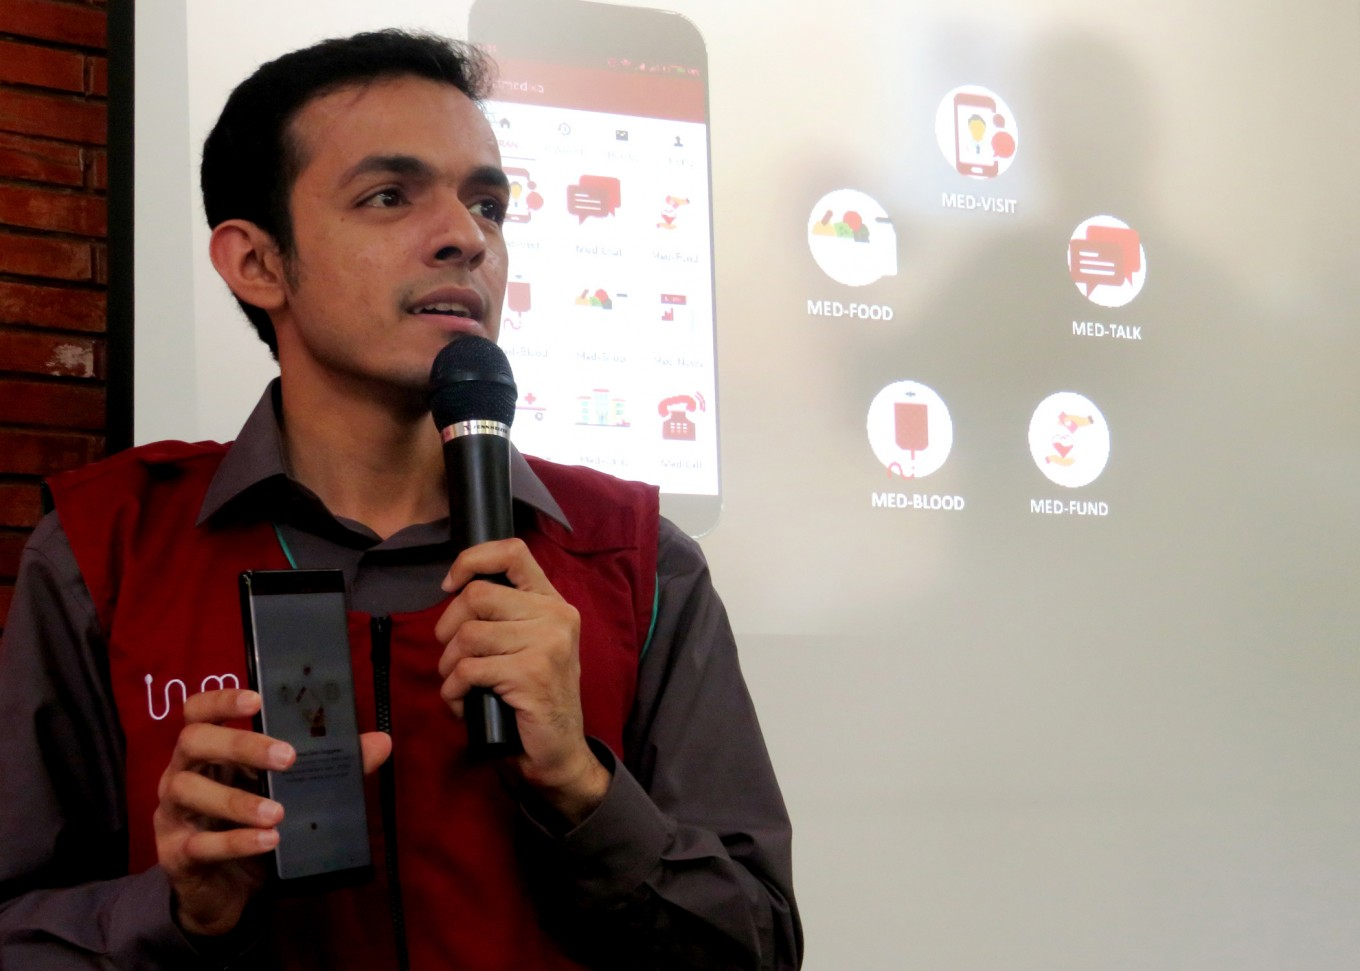 Doctor house call app launched